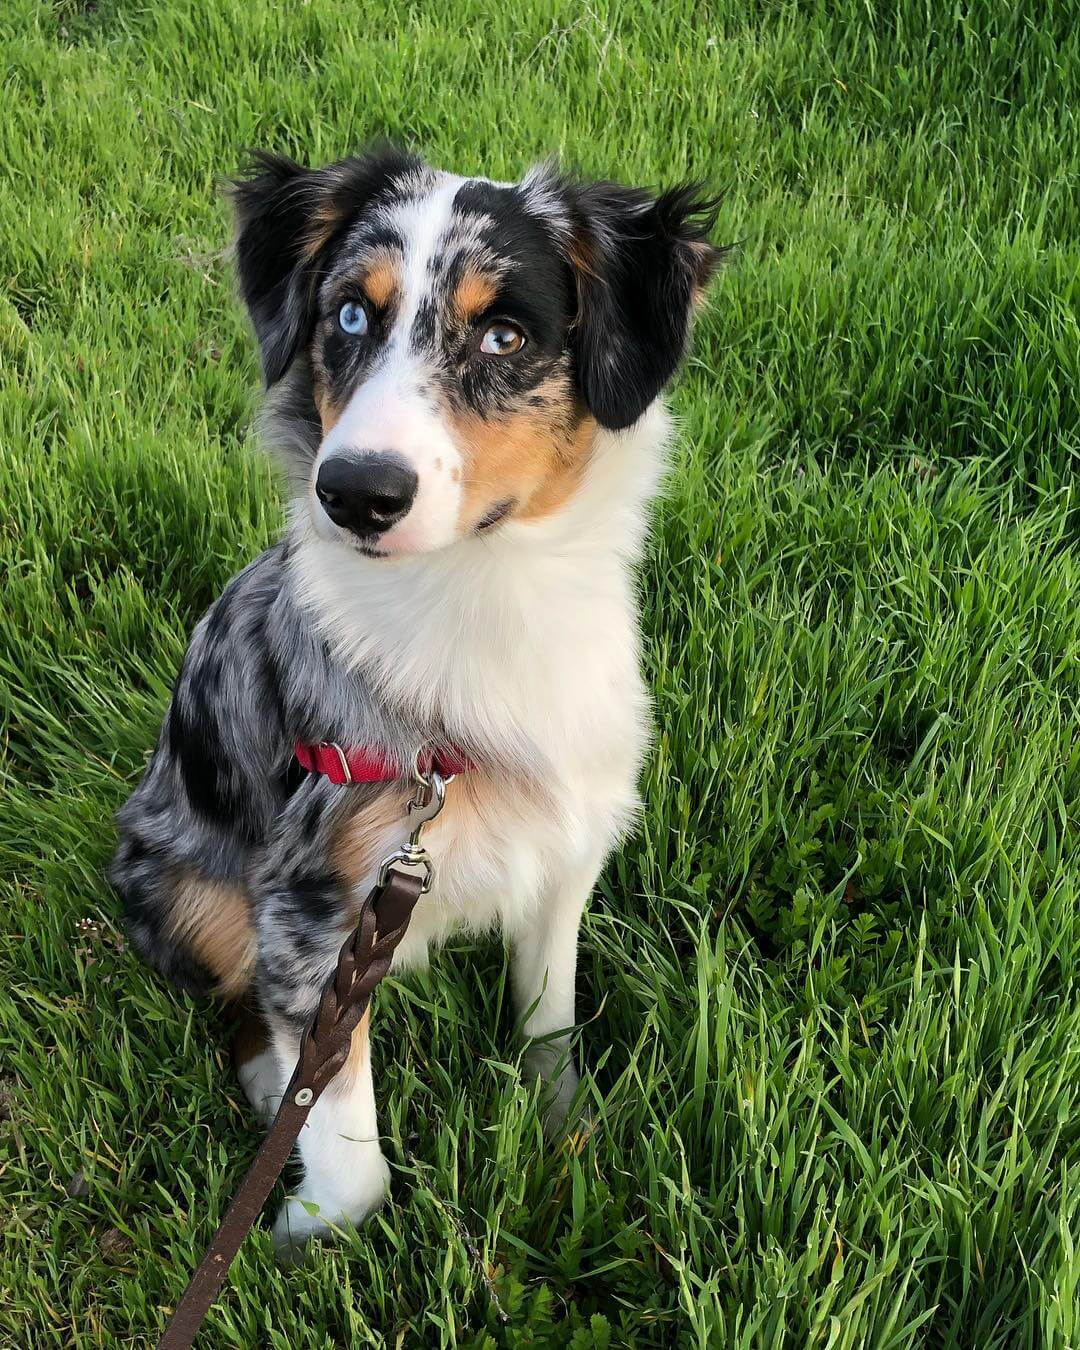 Australian Shepherd dog in the San Luis Obispo Grass